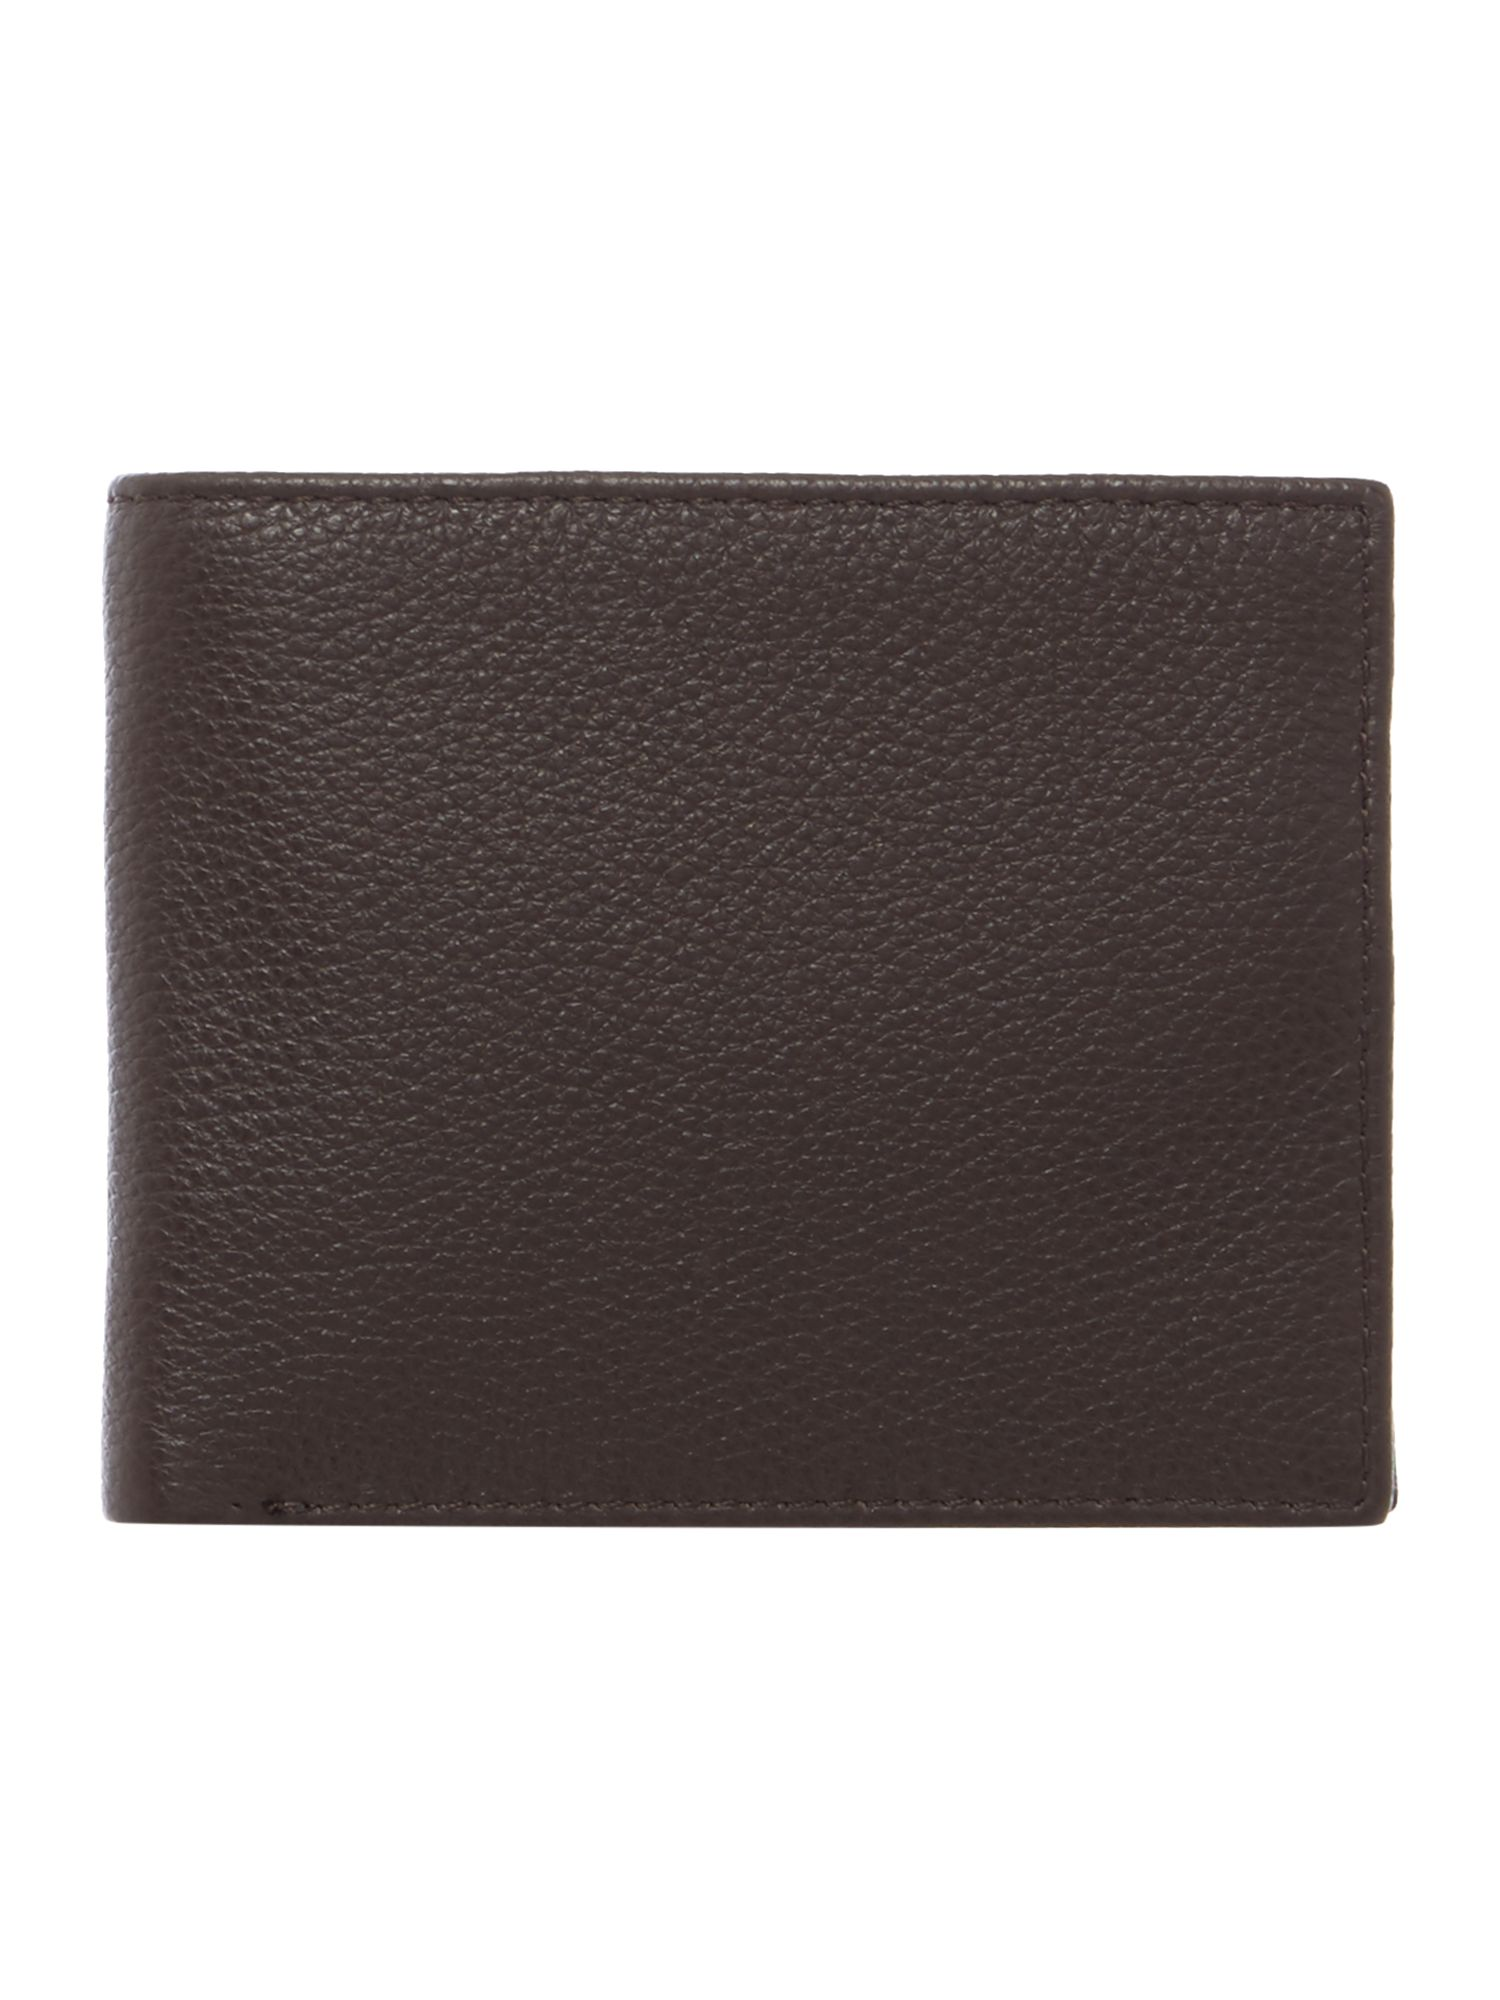 Howick Bold Grain Leather Wallet With Coin Pocket, Brown